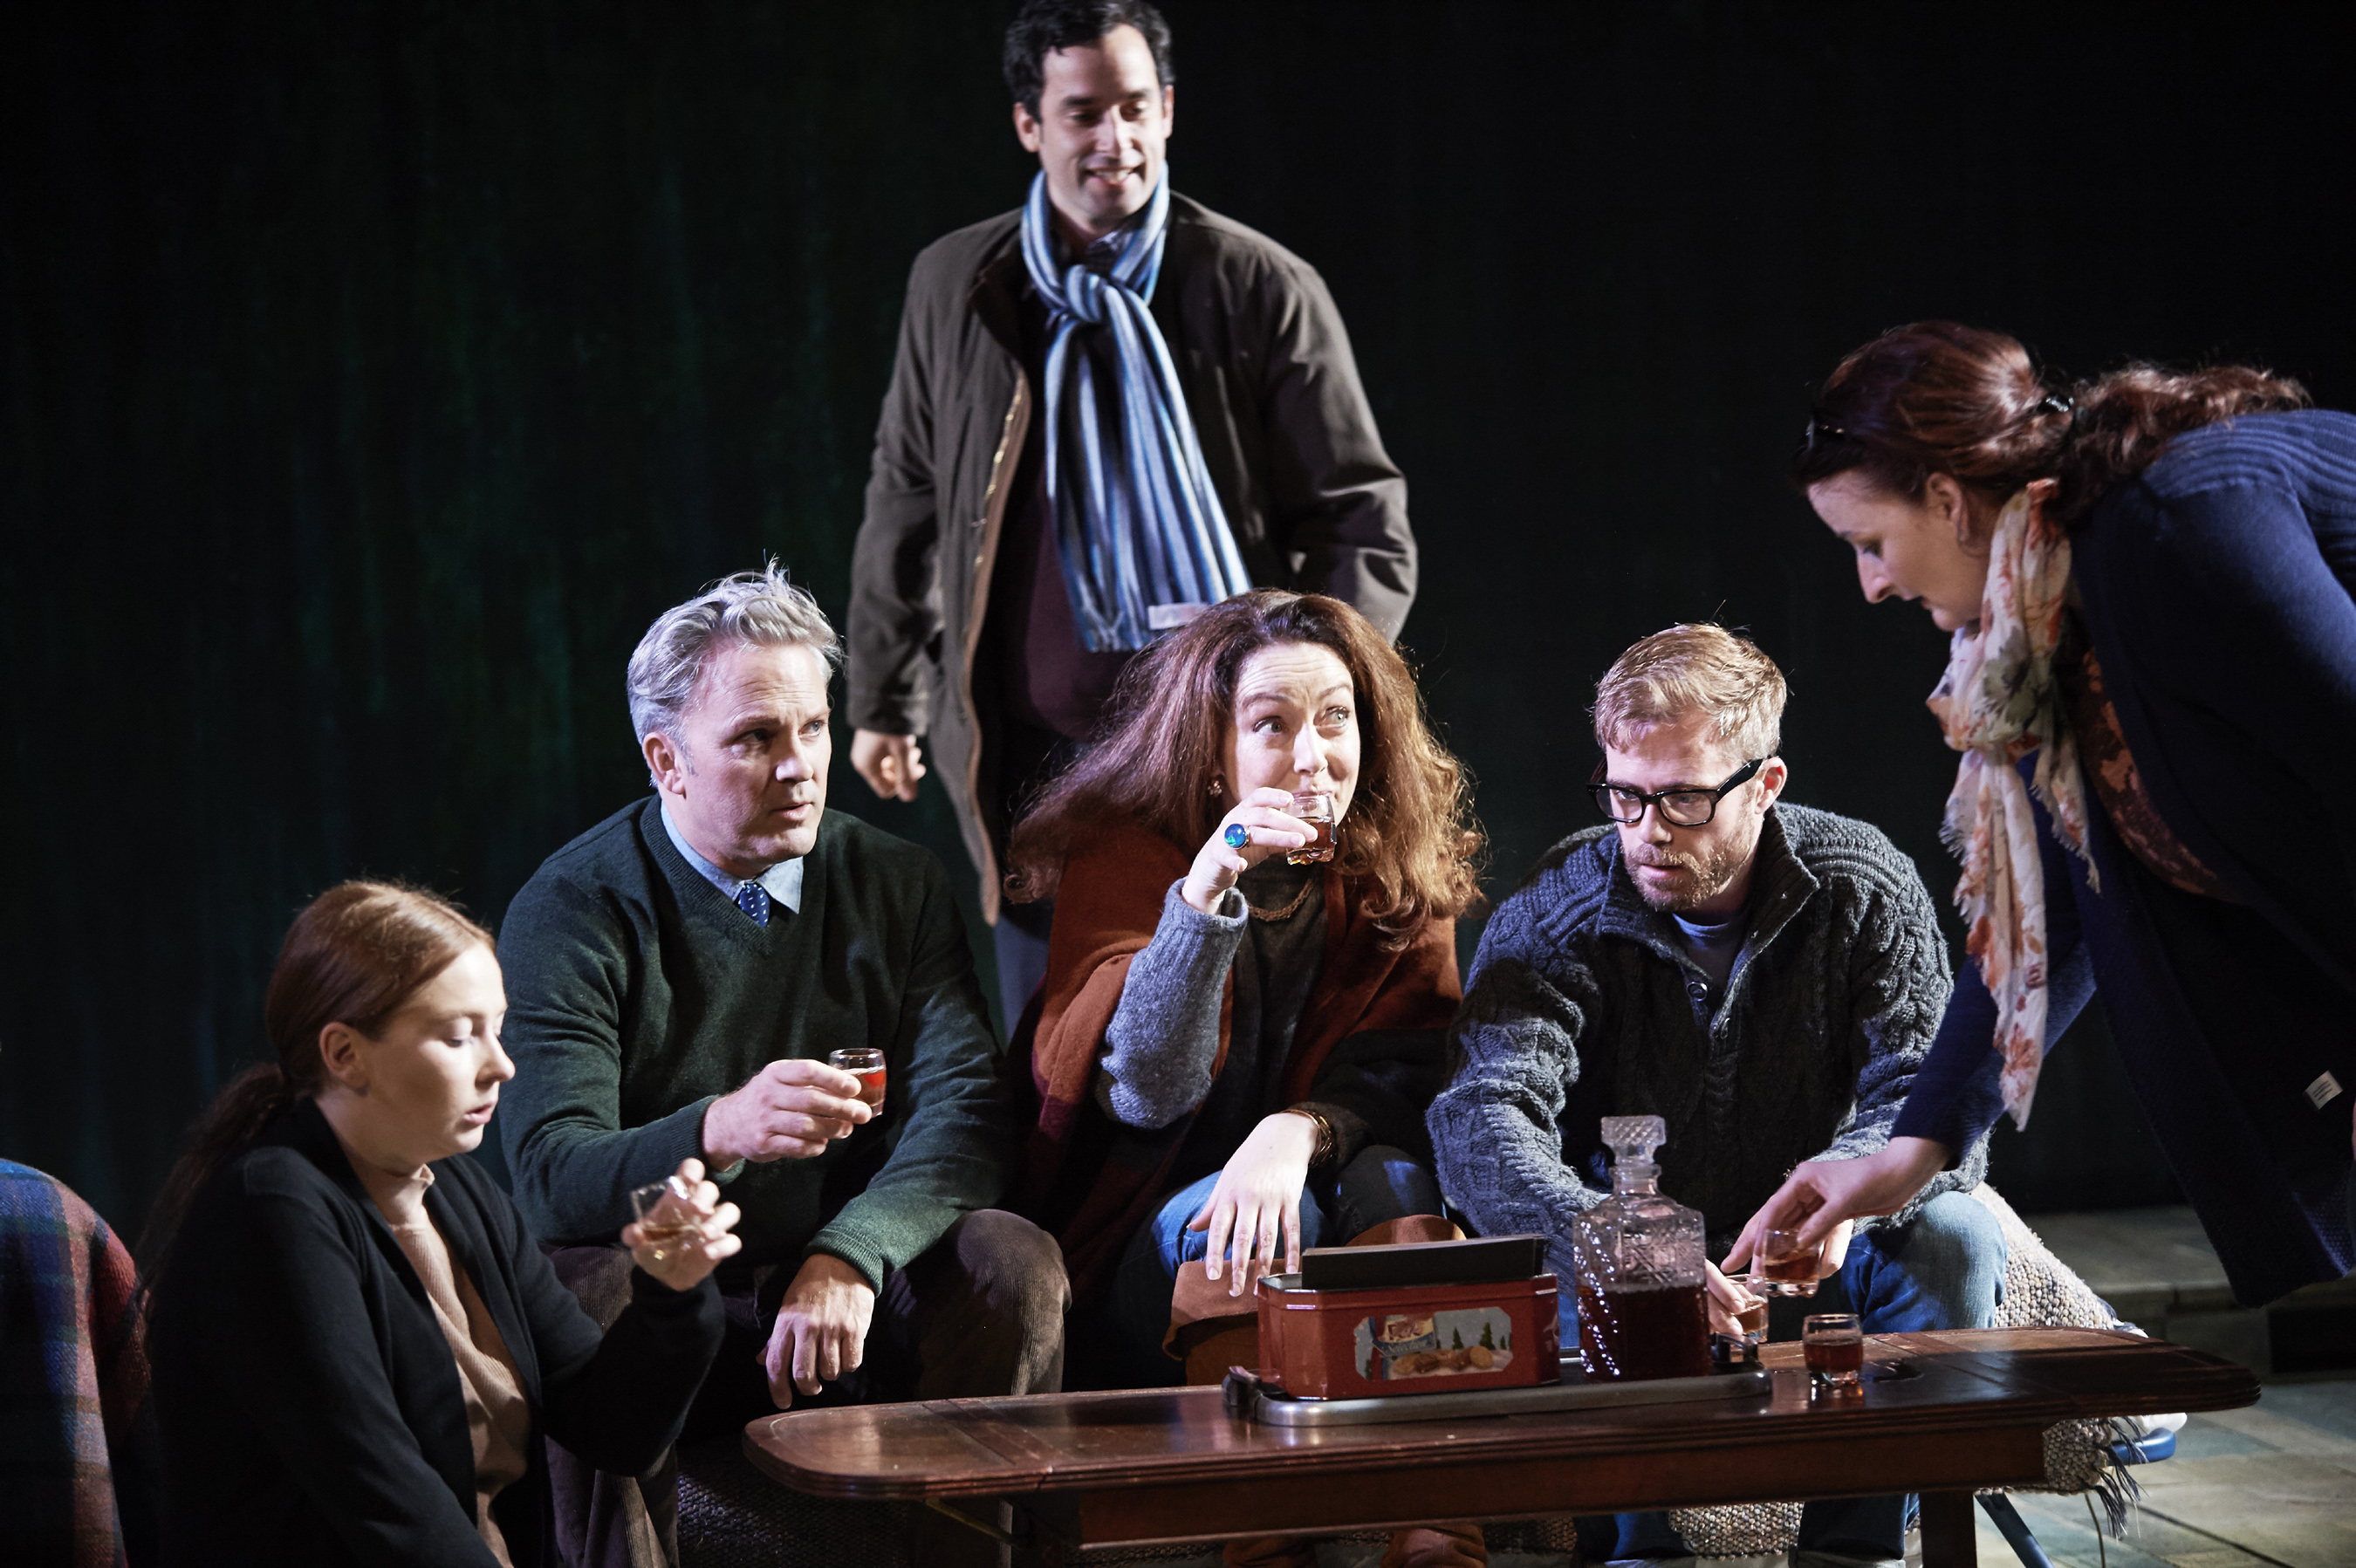 Imogen Doel,  Louis Lovett,  Stephen Mullan,  Derbhle Crotty, Rory Keenan,  Anna Healy in The Seagull by Anton Chekhov in a new version by Michael West and Annie Ryan at the Gaiety Theatre preview 5 Oct, opens 6th Oct and runs until 16 Oct as part of Dublin Theatre Festival  Credit Ros Kavanagh